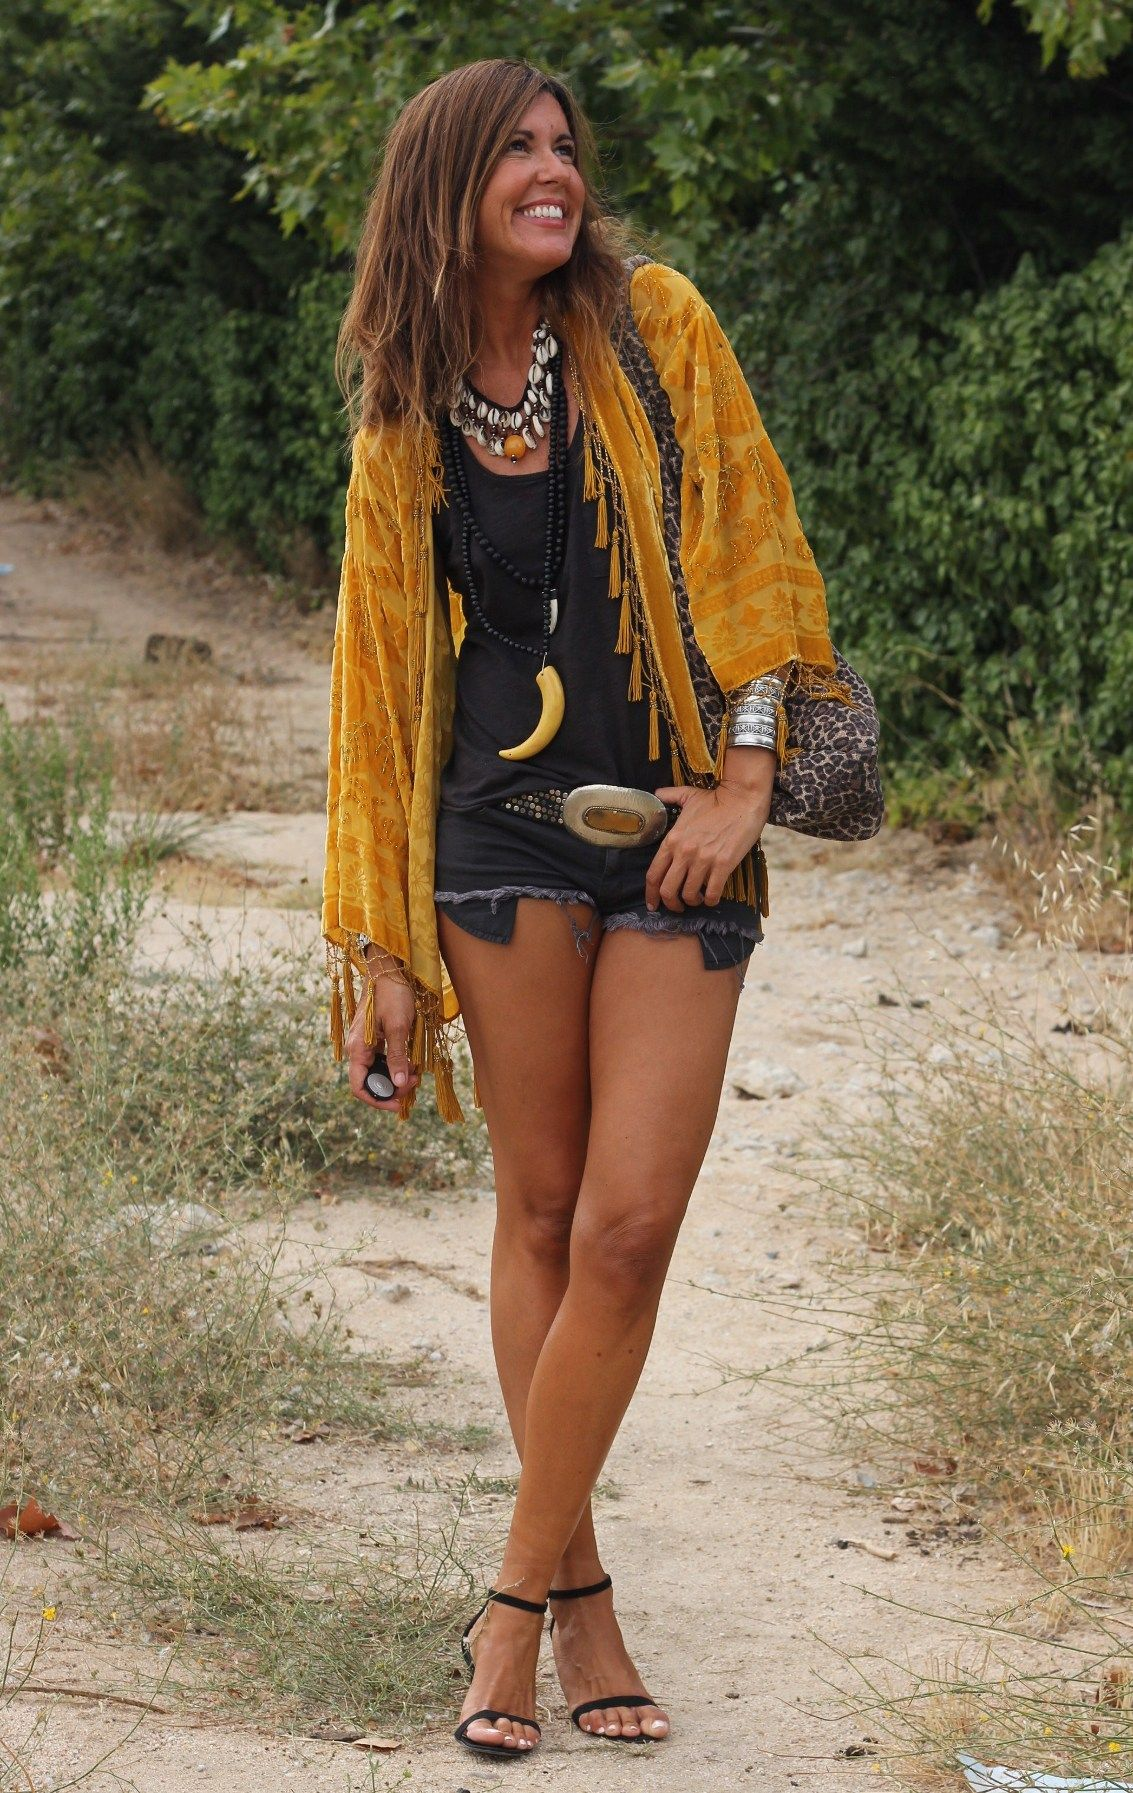 Boho chic velvet fringe jacket with modern hippie necklaces and chunky silver belt buckle.